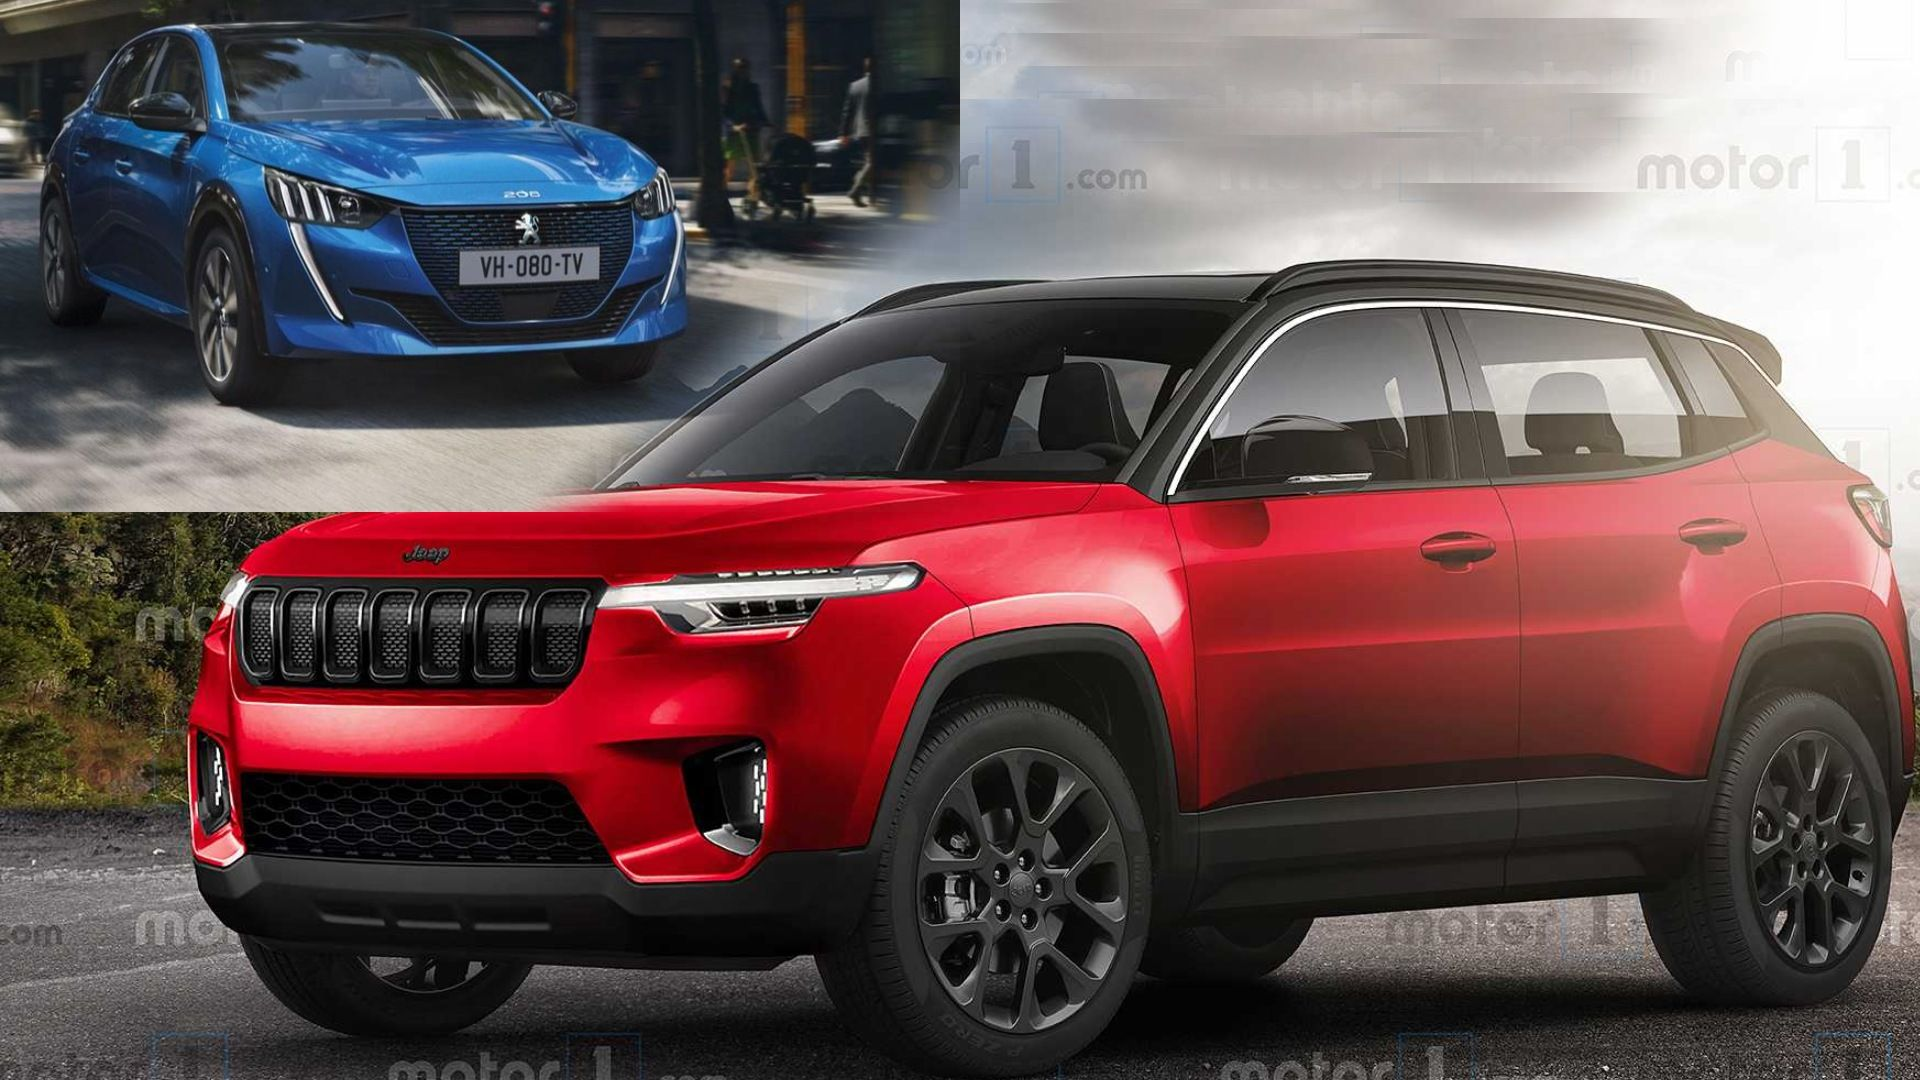 Jeep producirá un mini Renegade con base de Peugeot 208